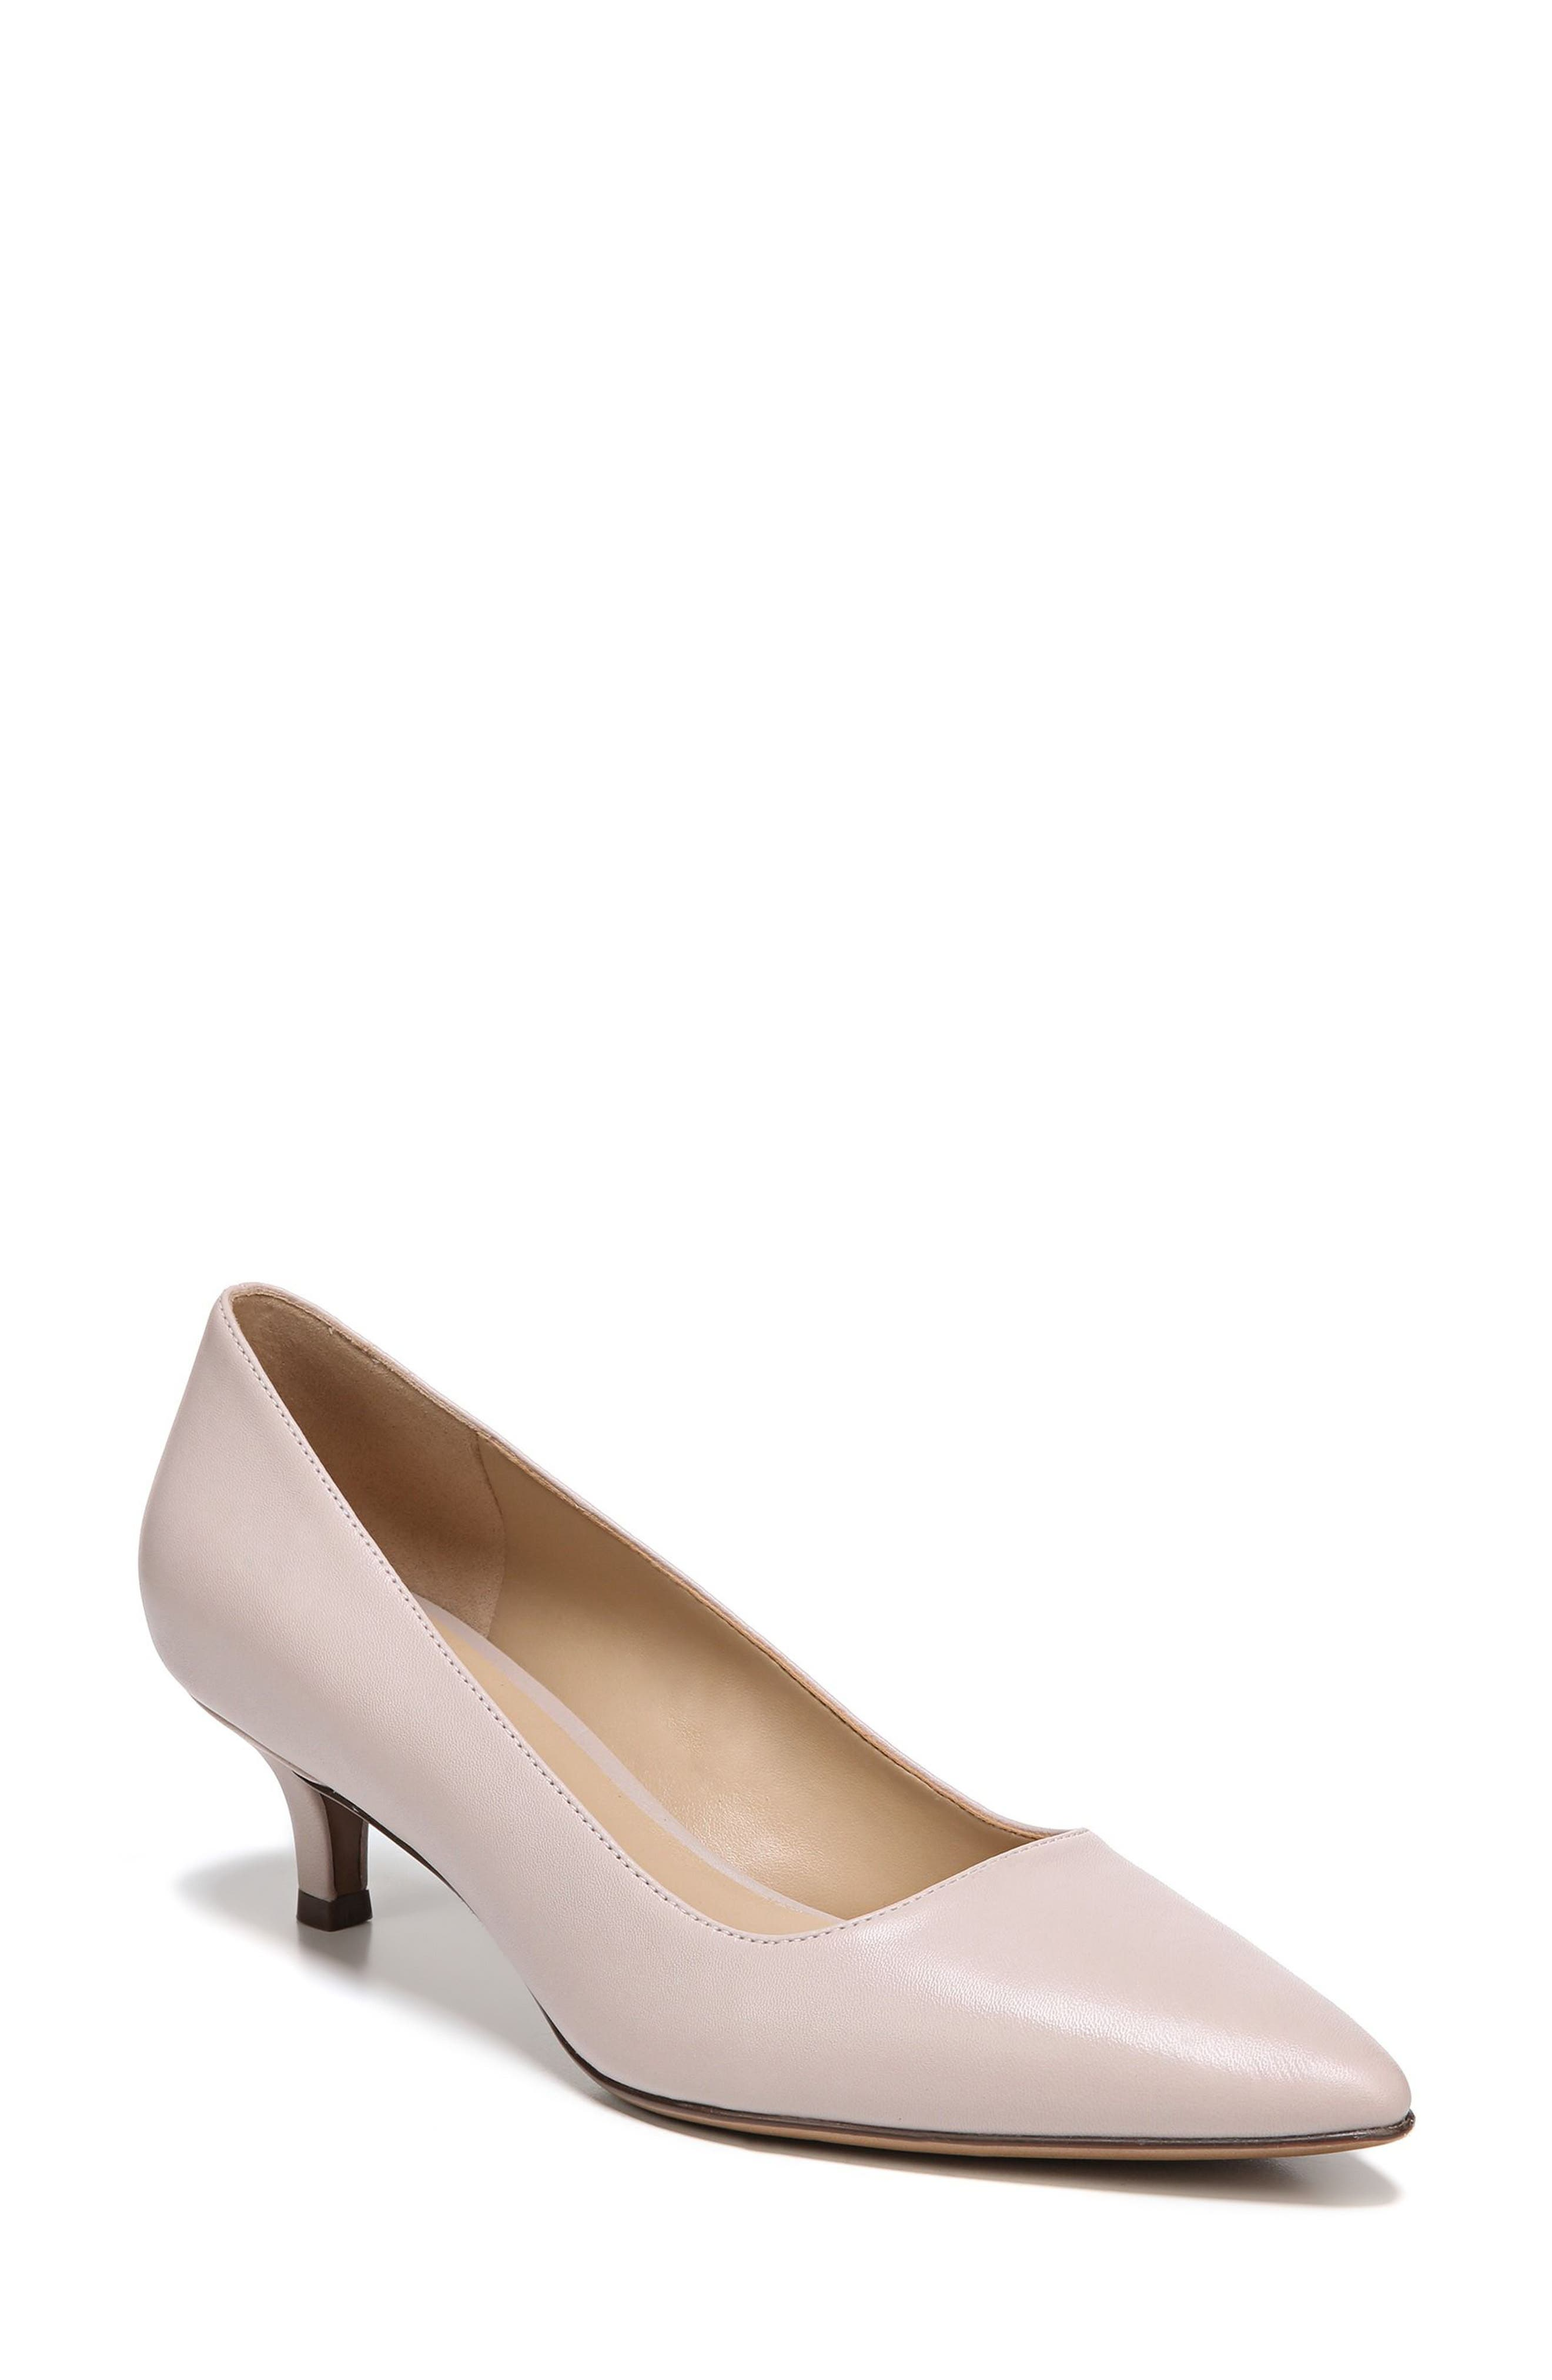 Pippa Pump,                             Main thumbnail 1, color,                             GREY LEATHER